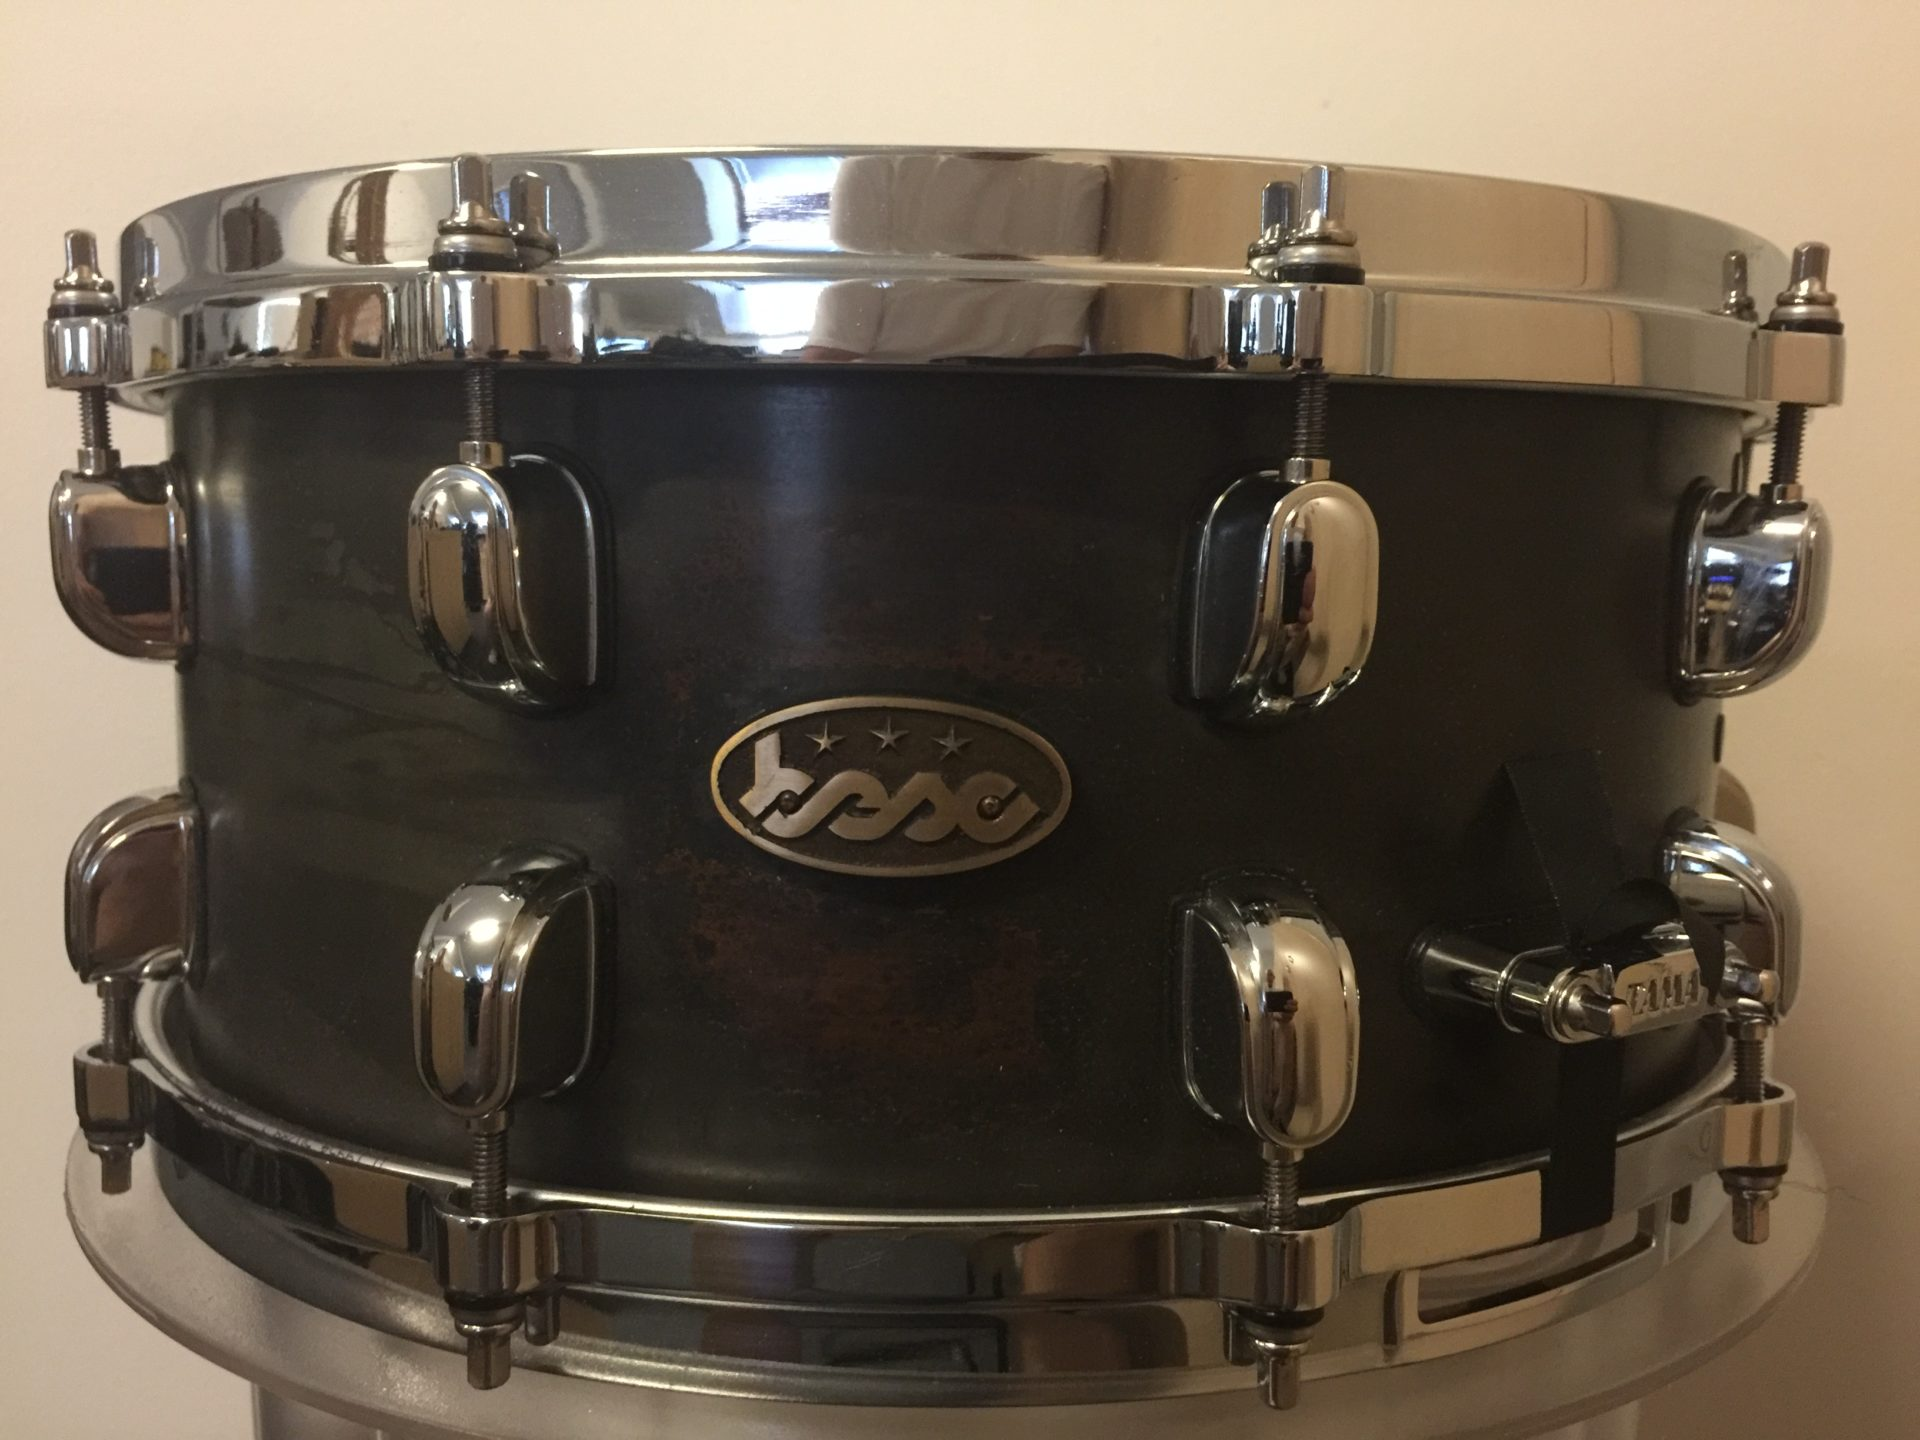 Copper snare 14x6,5 Brown-Black BESC